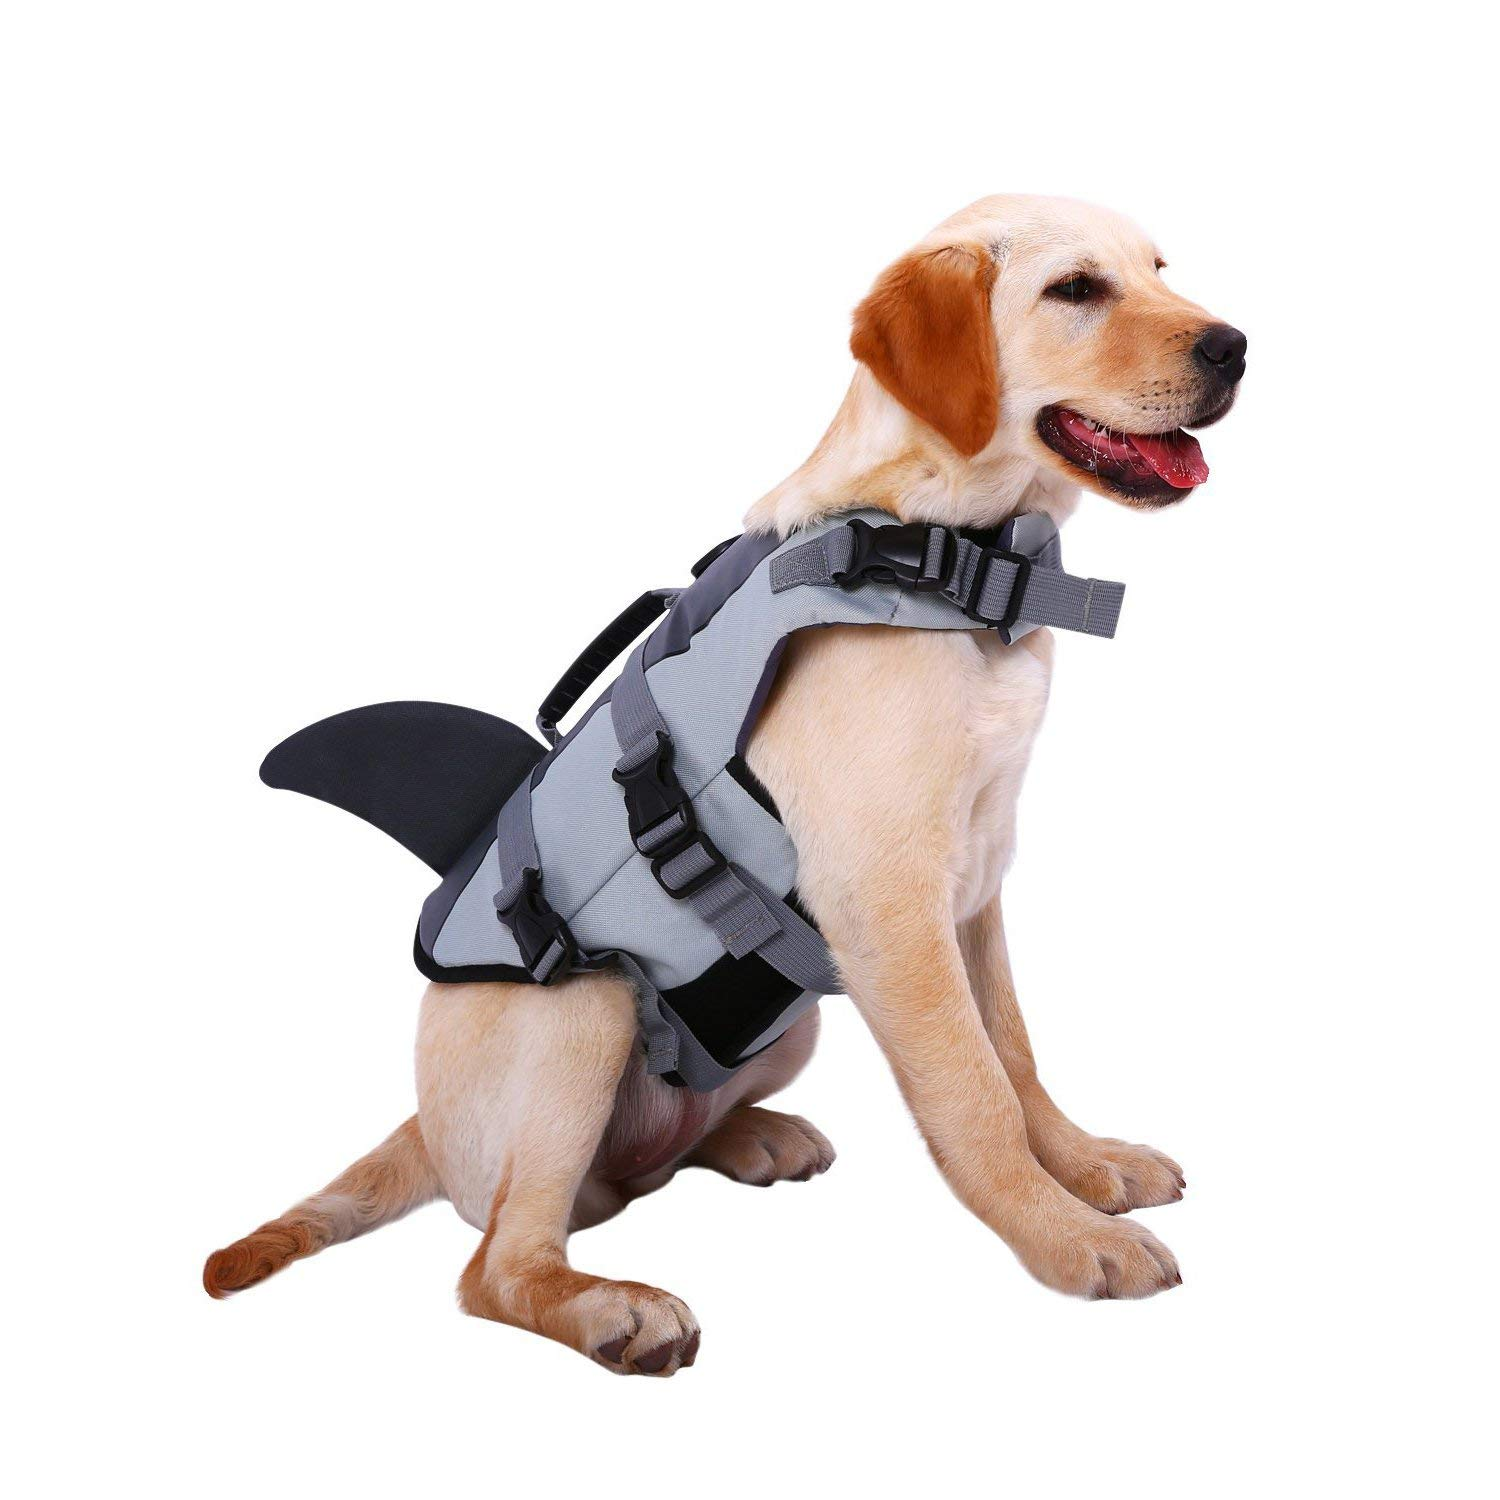 Dog Life Jackets, Ripstop Pet Floatation Life Vest for Small, Middle, Large Size Dogs, Dog Lifesaver Preserver Swimsuit for Water Safety at The Pool, Beach, Boating (XX-Large, Grey Shark) by Bess Bridal